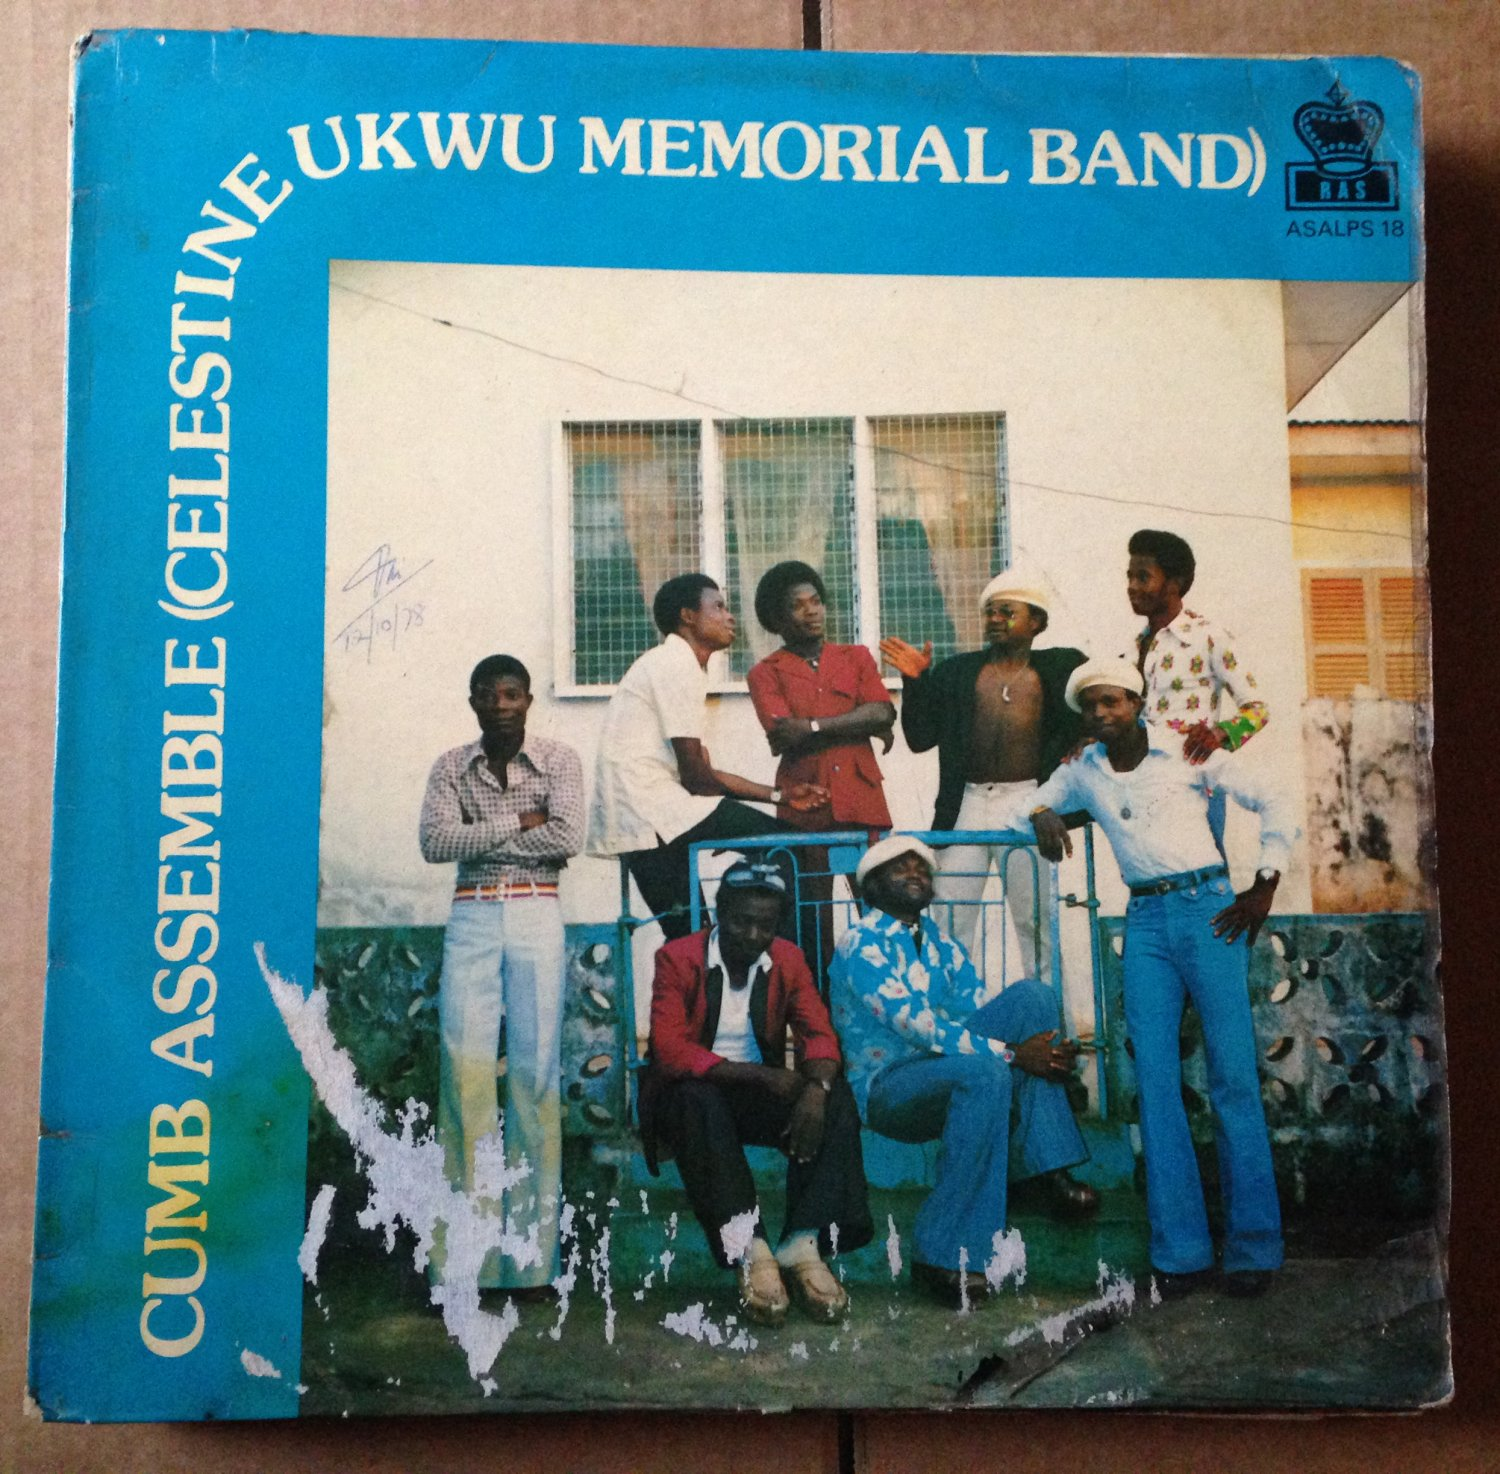 CUMB ASSEMBLE (CELESTINE UKWU MEMORIAL BAND) LP tribute NIGERIA mp3 LISTEN